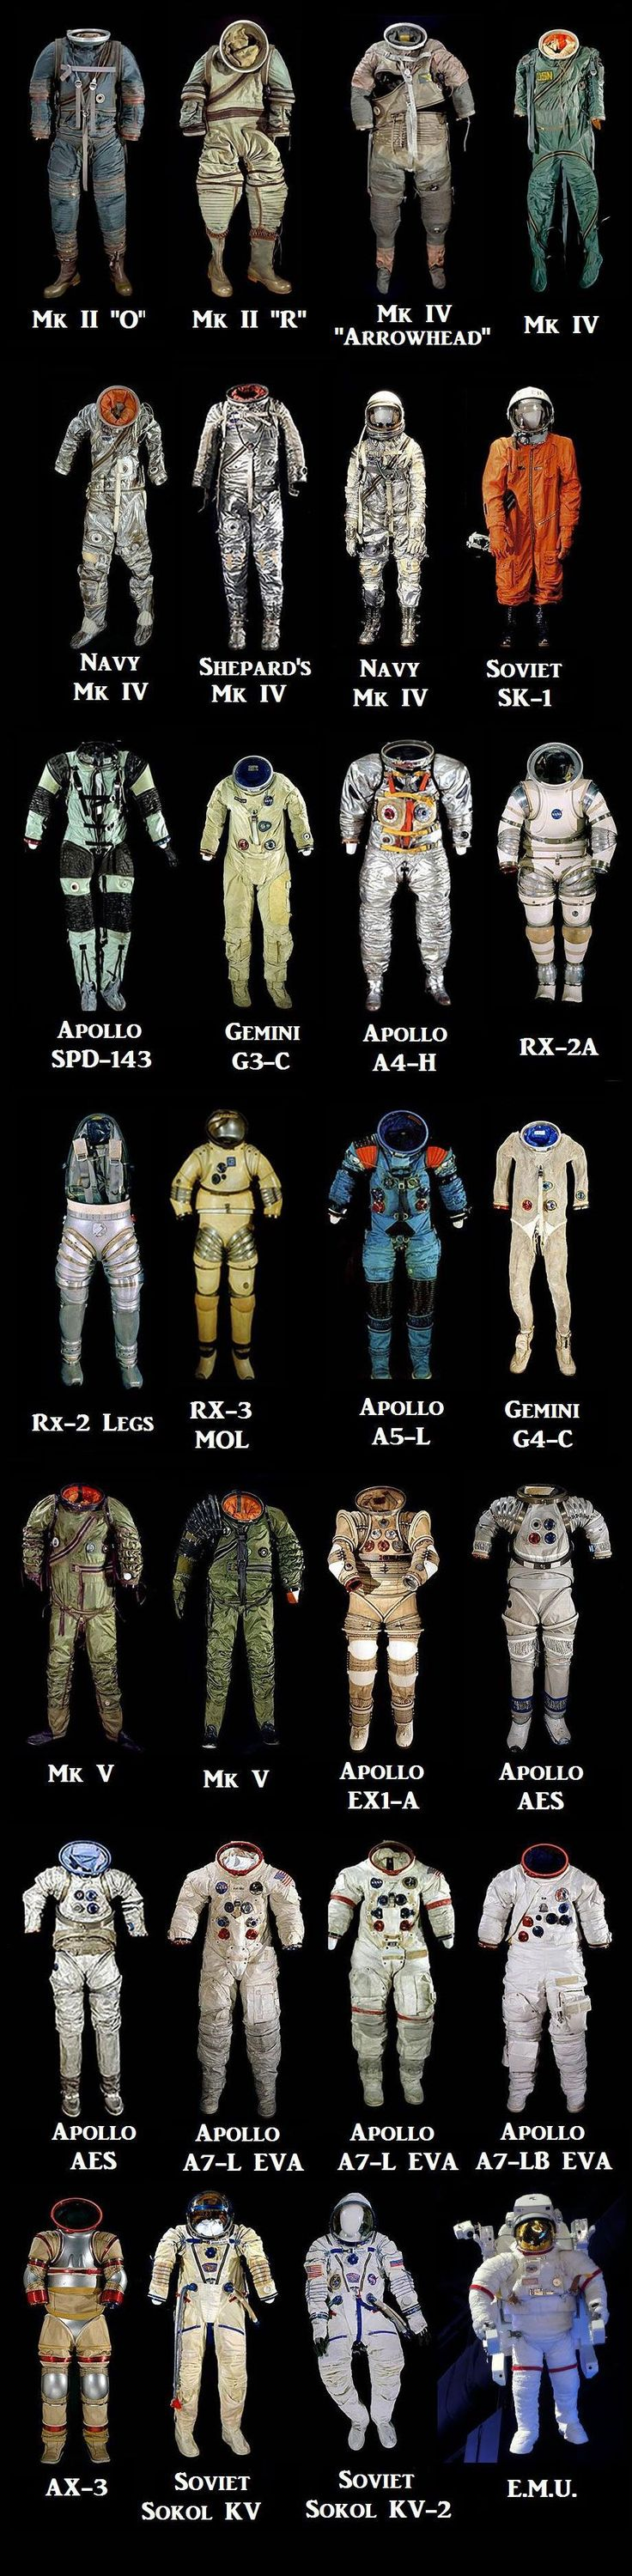 Illustrated Spacesuits                                                                                                                                                                                 More